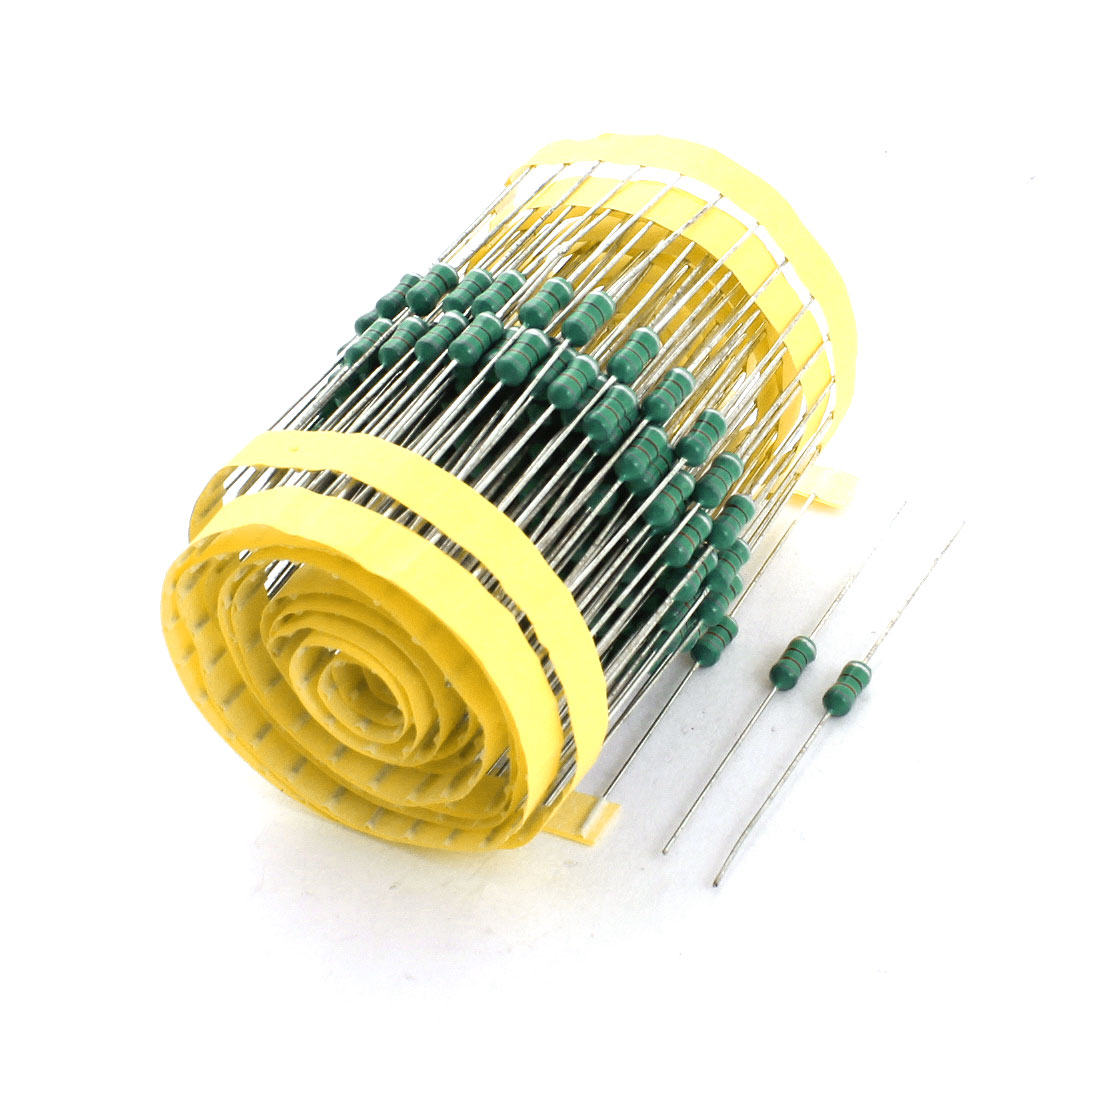 200Pcs PCB Welding 1/2W 820uH 10% Axial Color Ring Inductors 0410 4x10mm